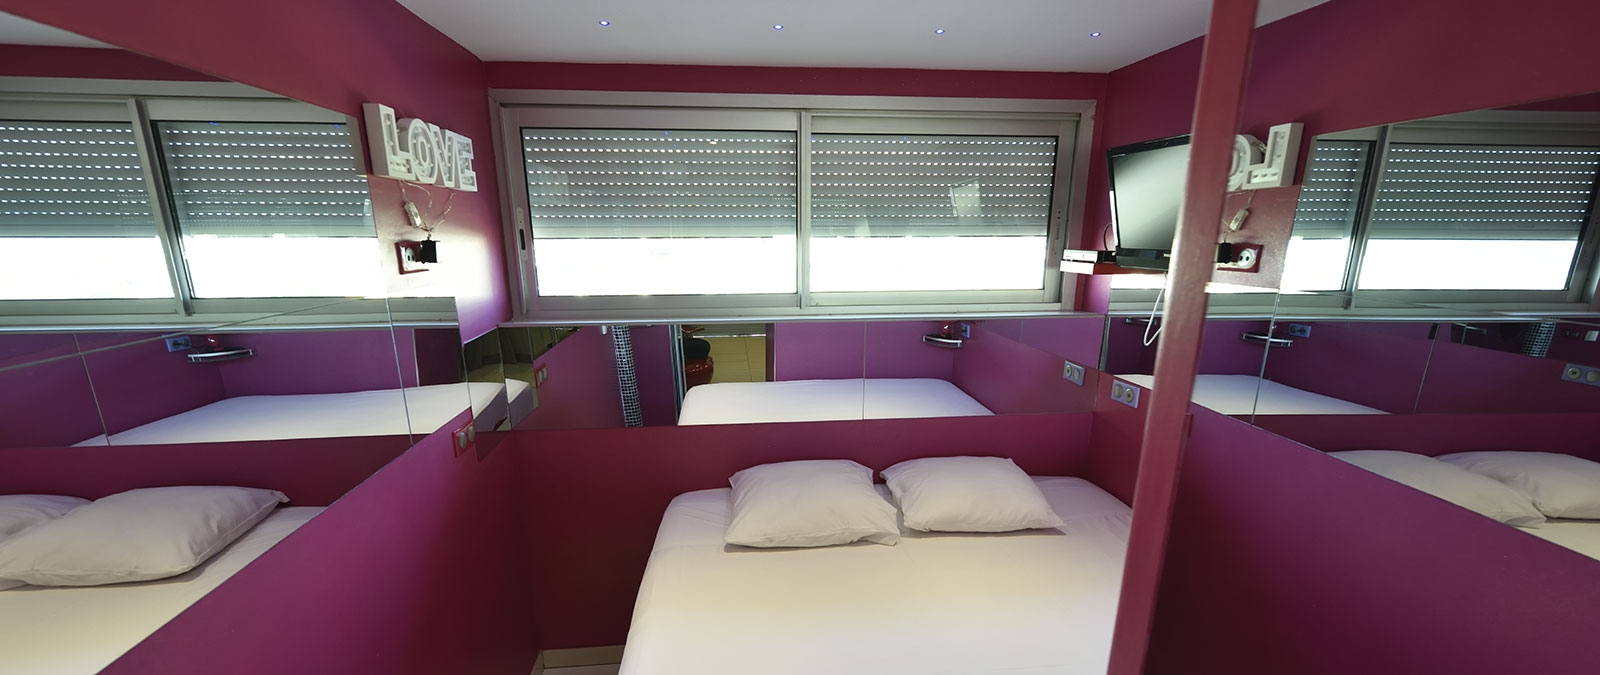 Bedroom with 180 cm double bed Amour Fou naturist studio flat rental